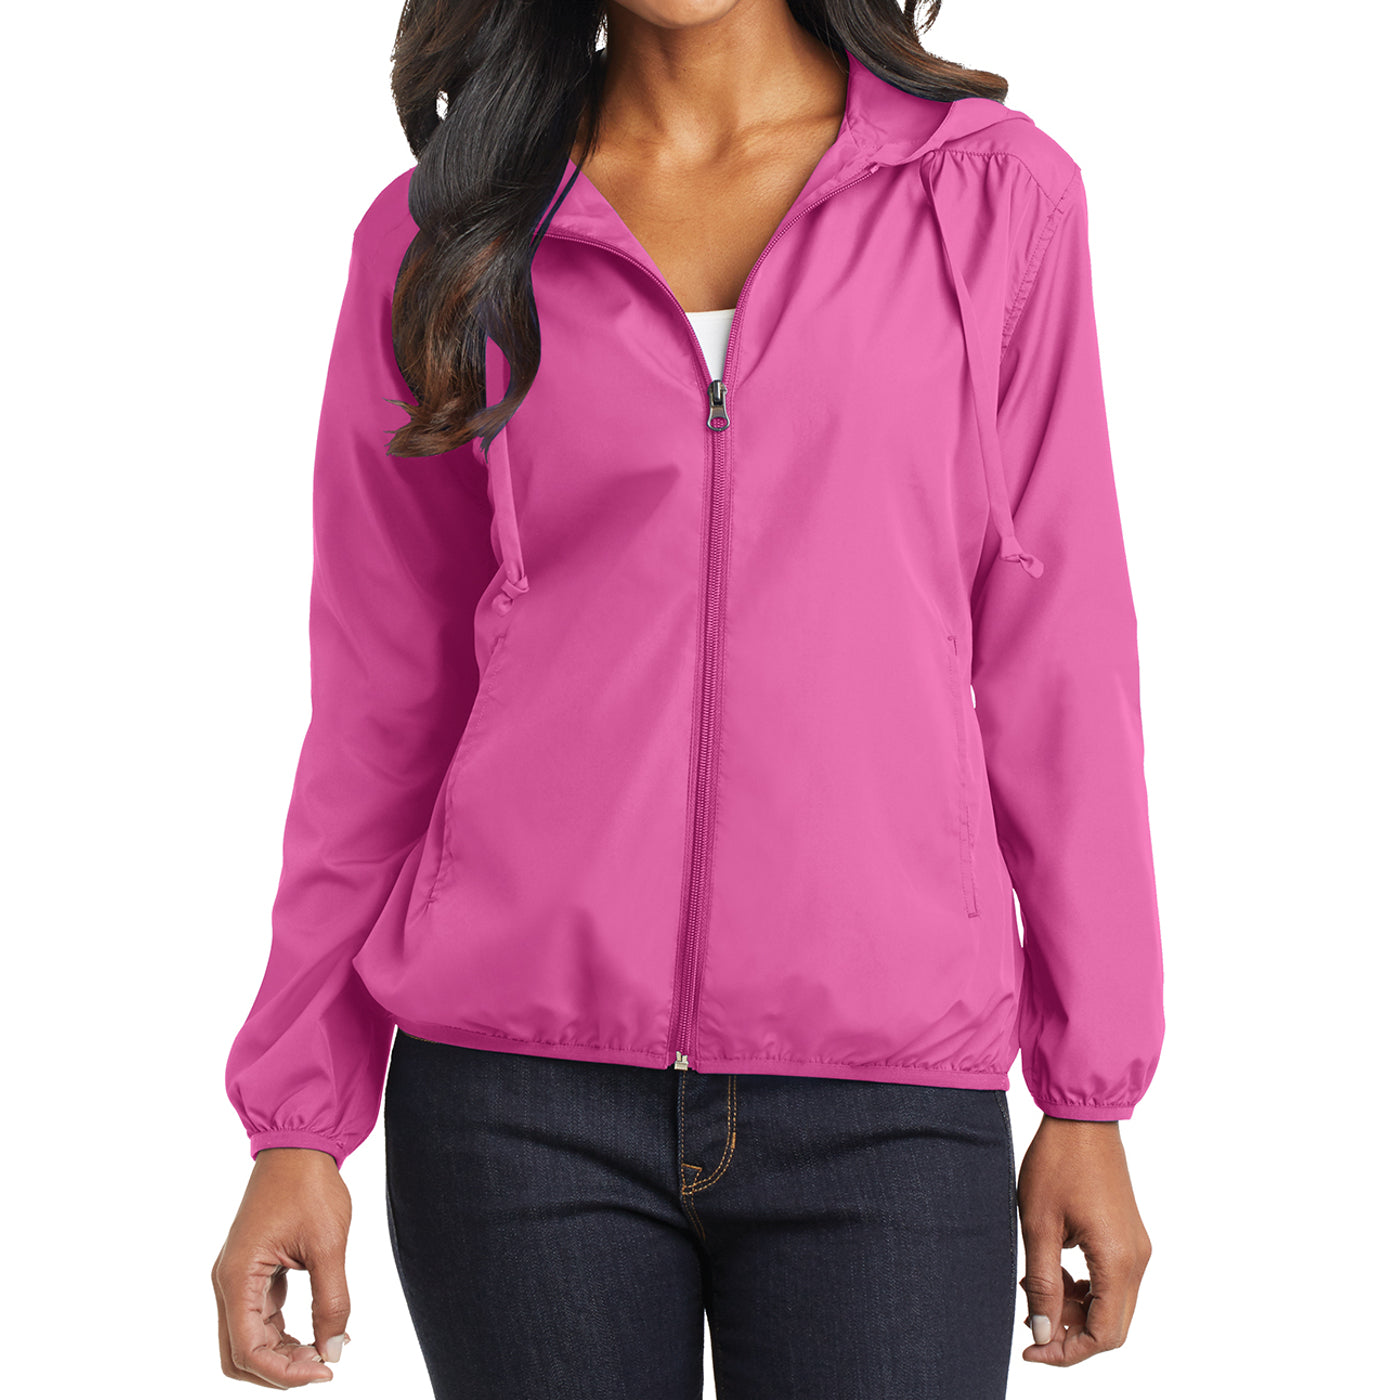 Women's Hooded Essential Jacket - Charity Pink - Front